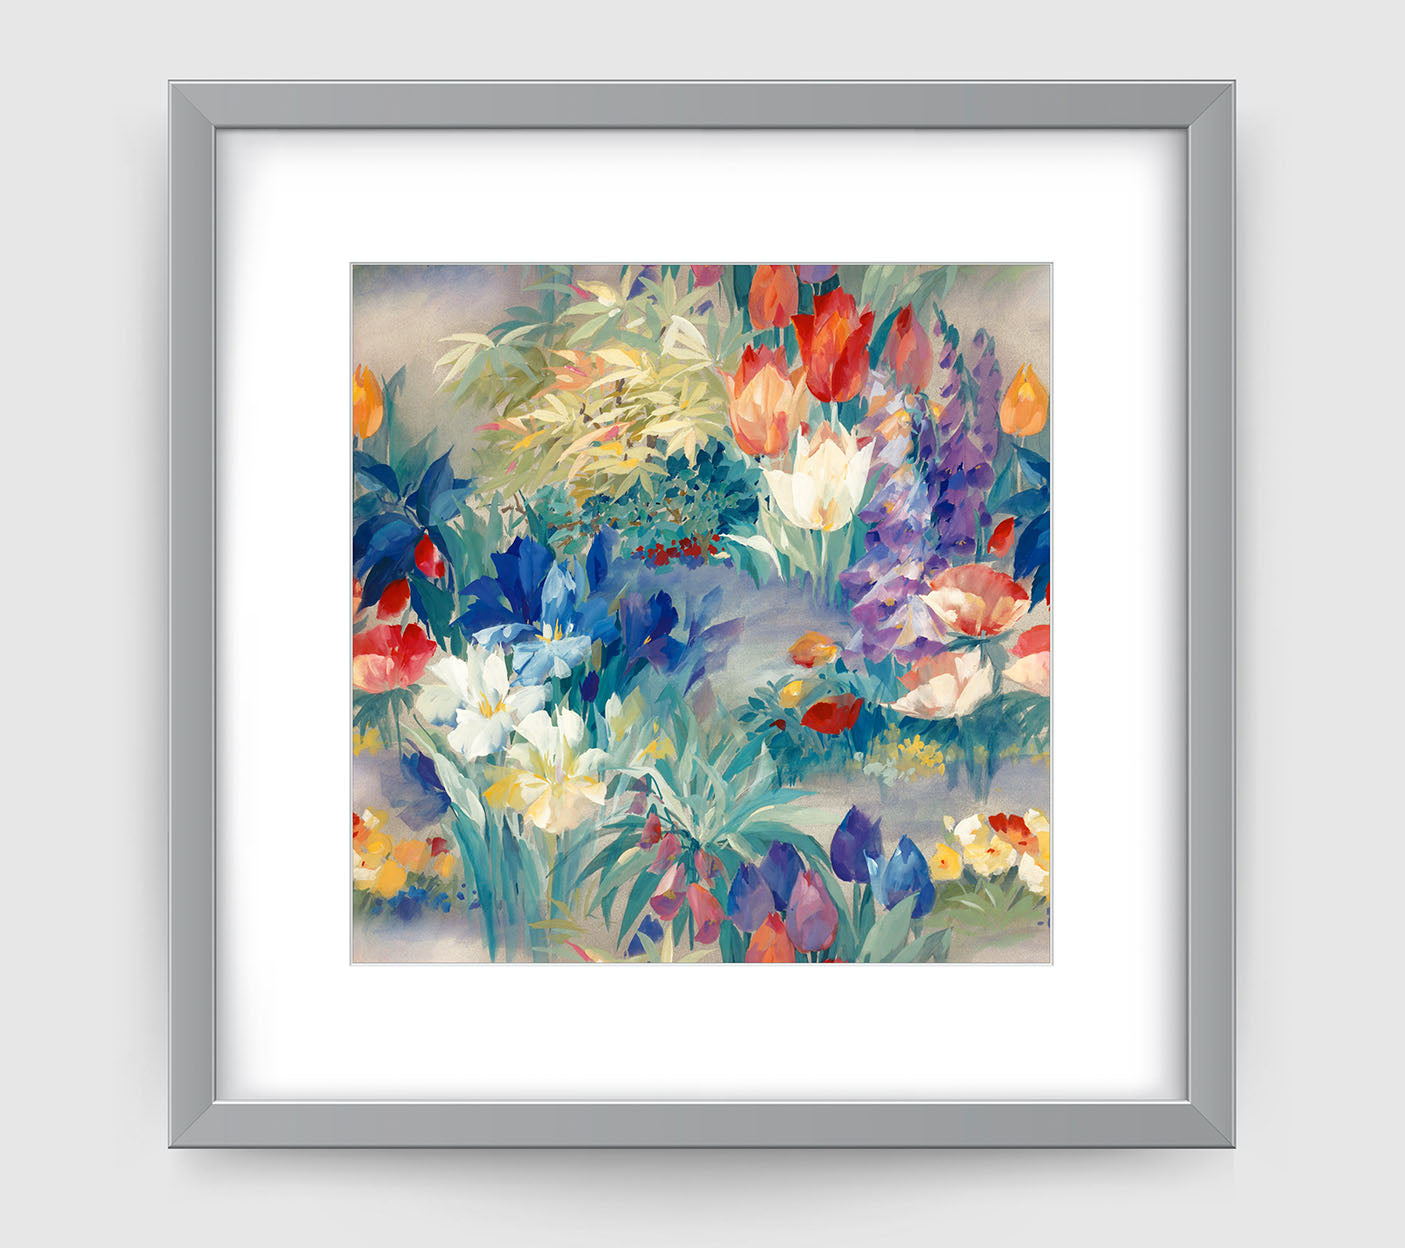 Secret Garden Impressionist Art Print Di Lewis Living Room Wall Decor